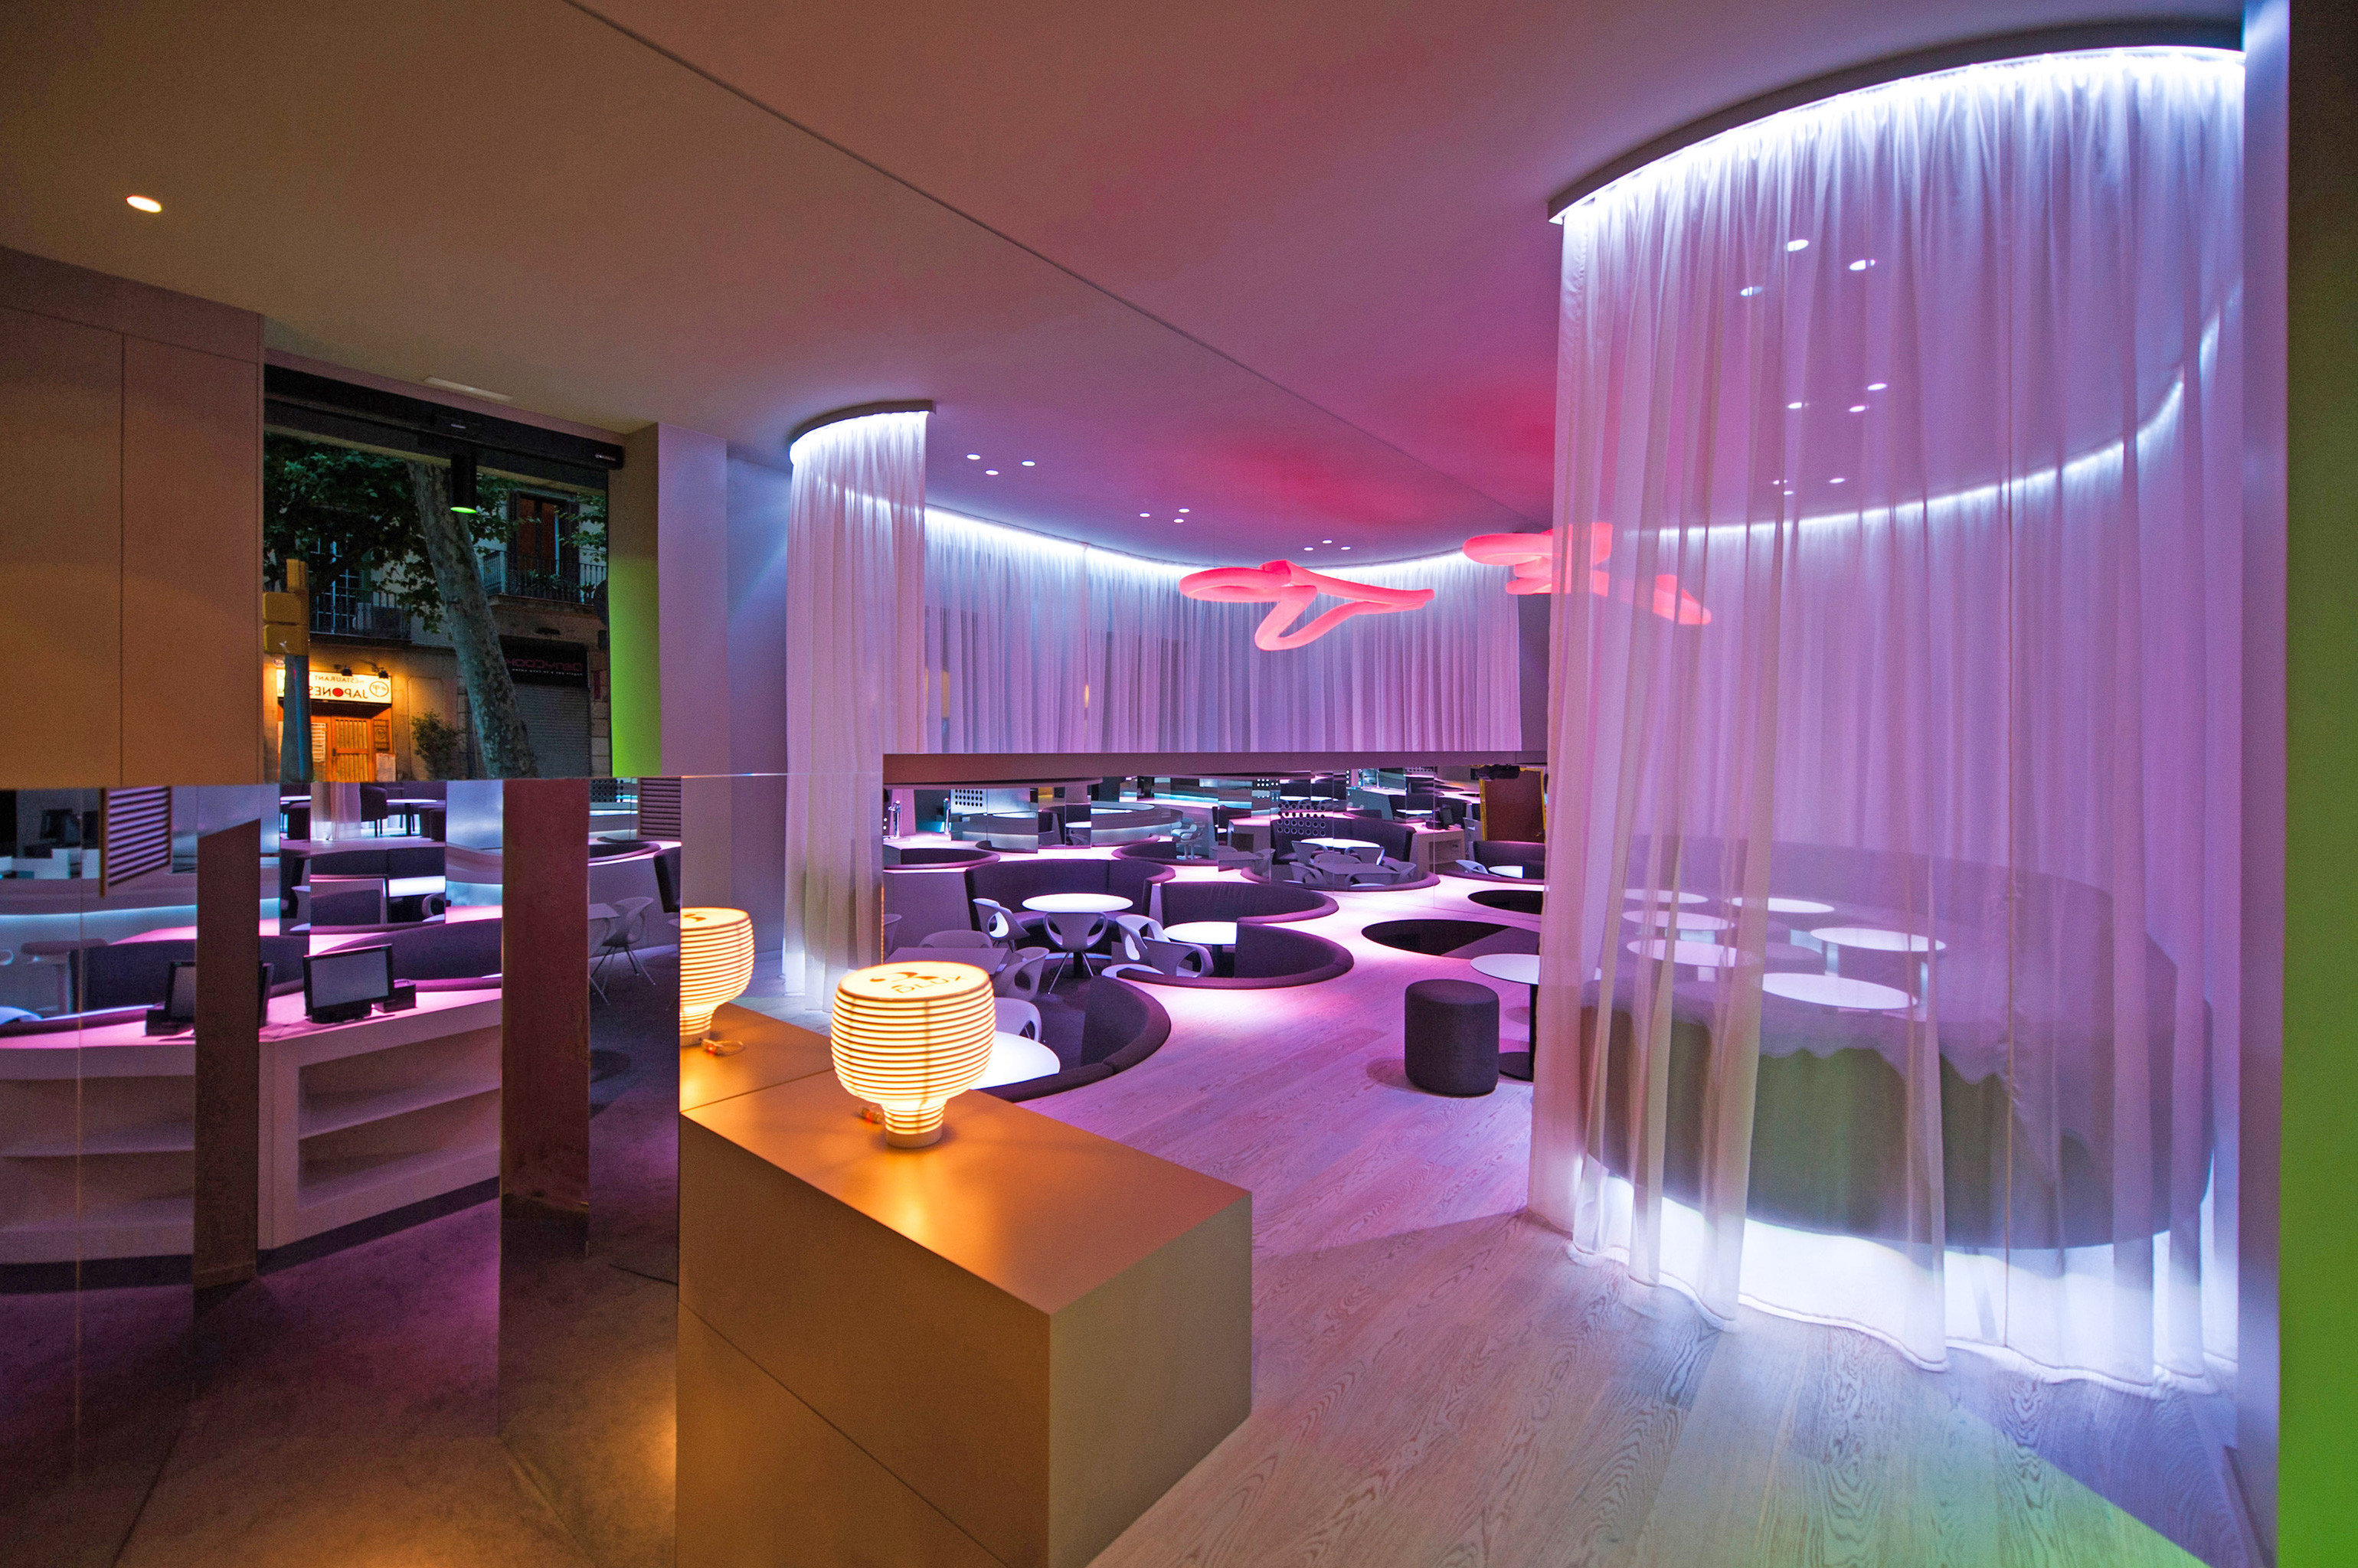 Adult-only City Hip Lounge Nightlife Play restaurant function hall Bar nightclub